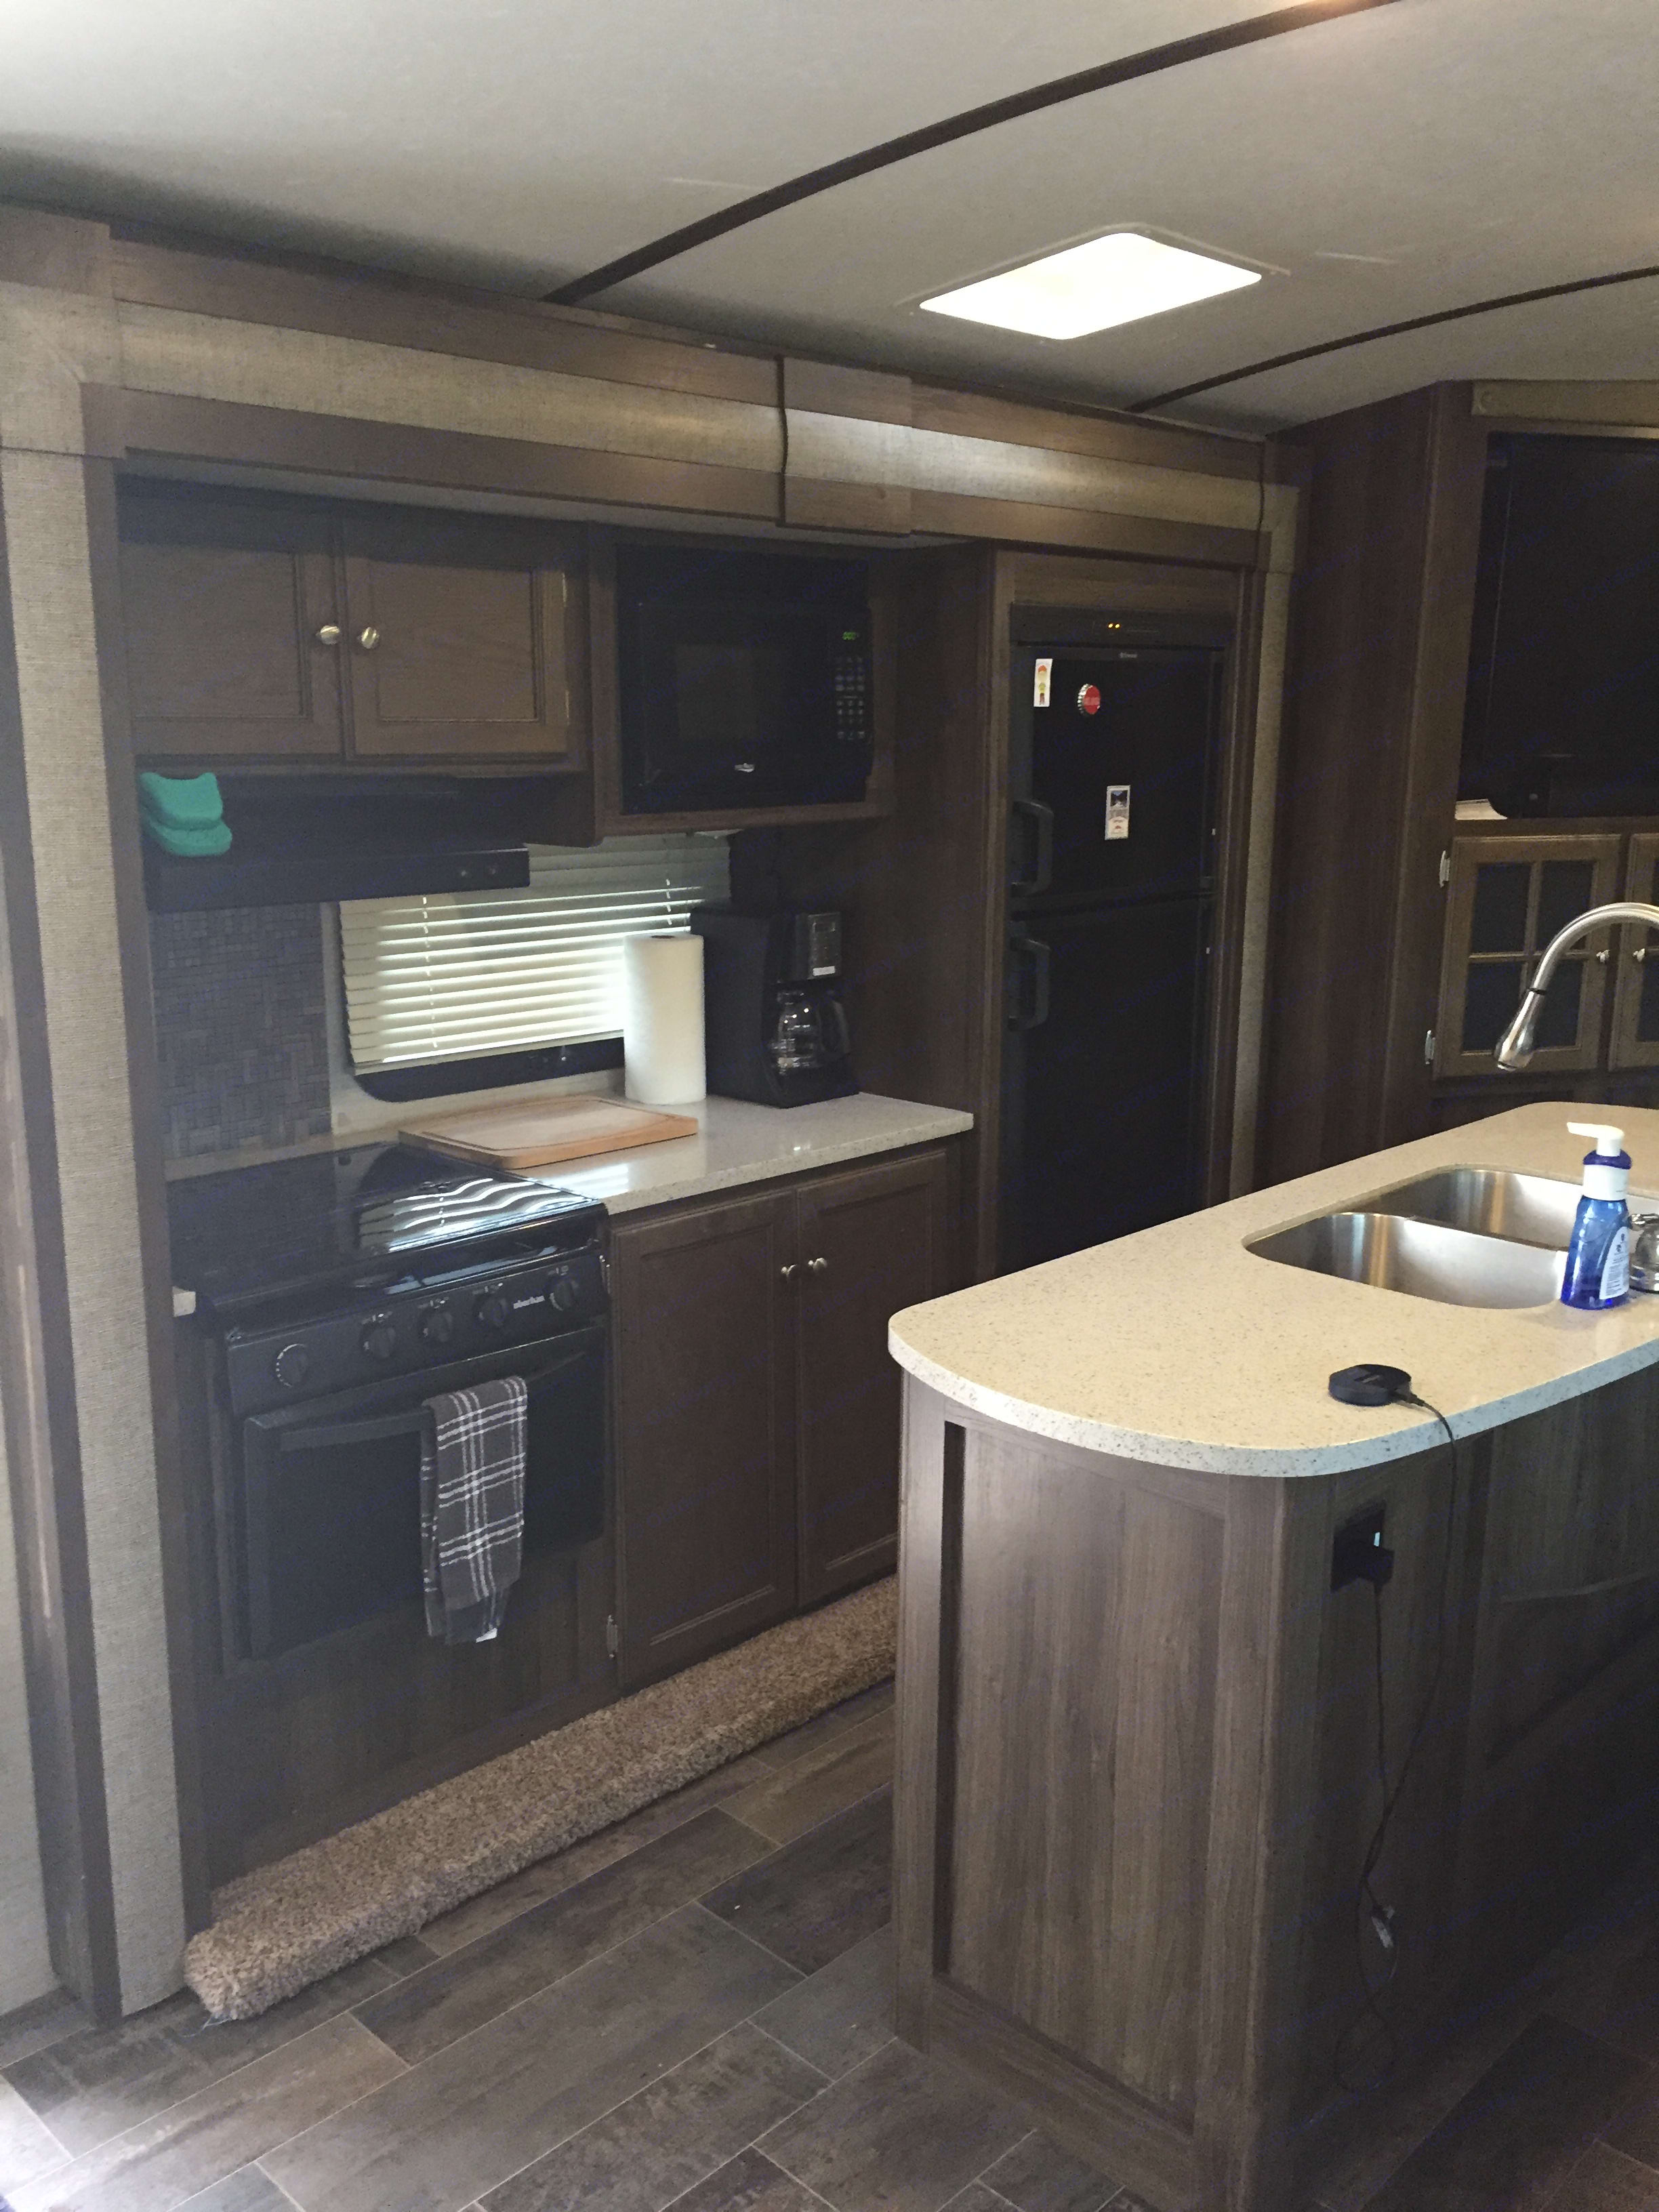 Kitchen stocked with dishware, coffee maker, toaster, gas stove/oven, microwave and fridge/freezer.. Keystone Bullet Premier 2017